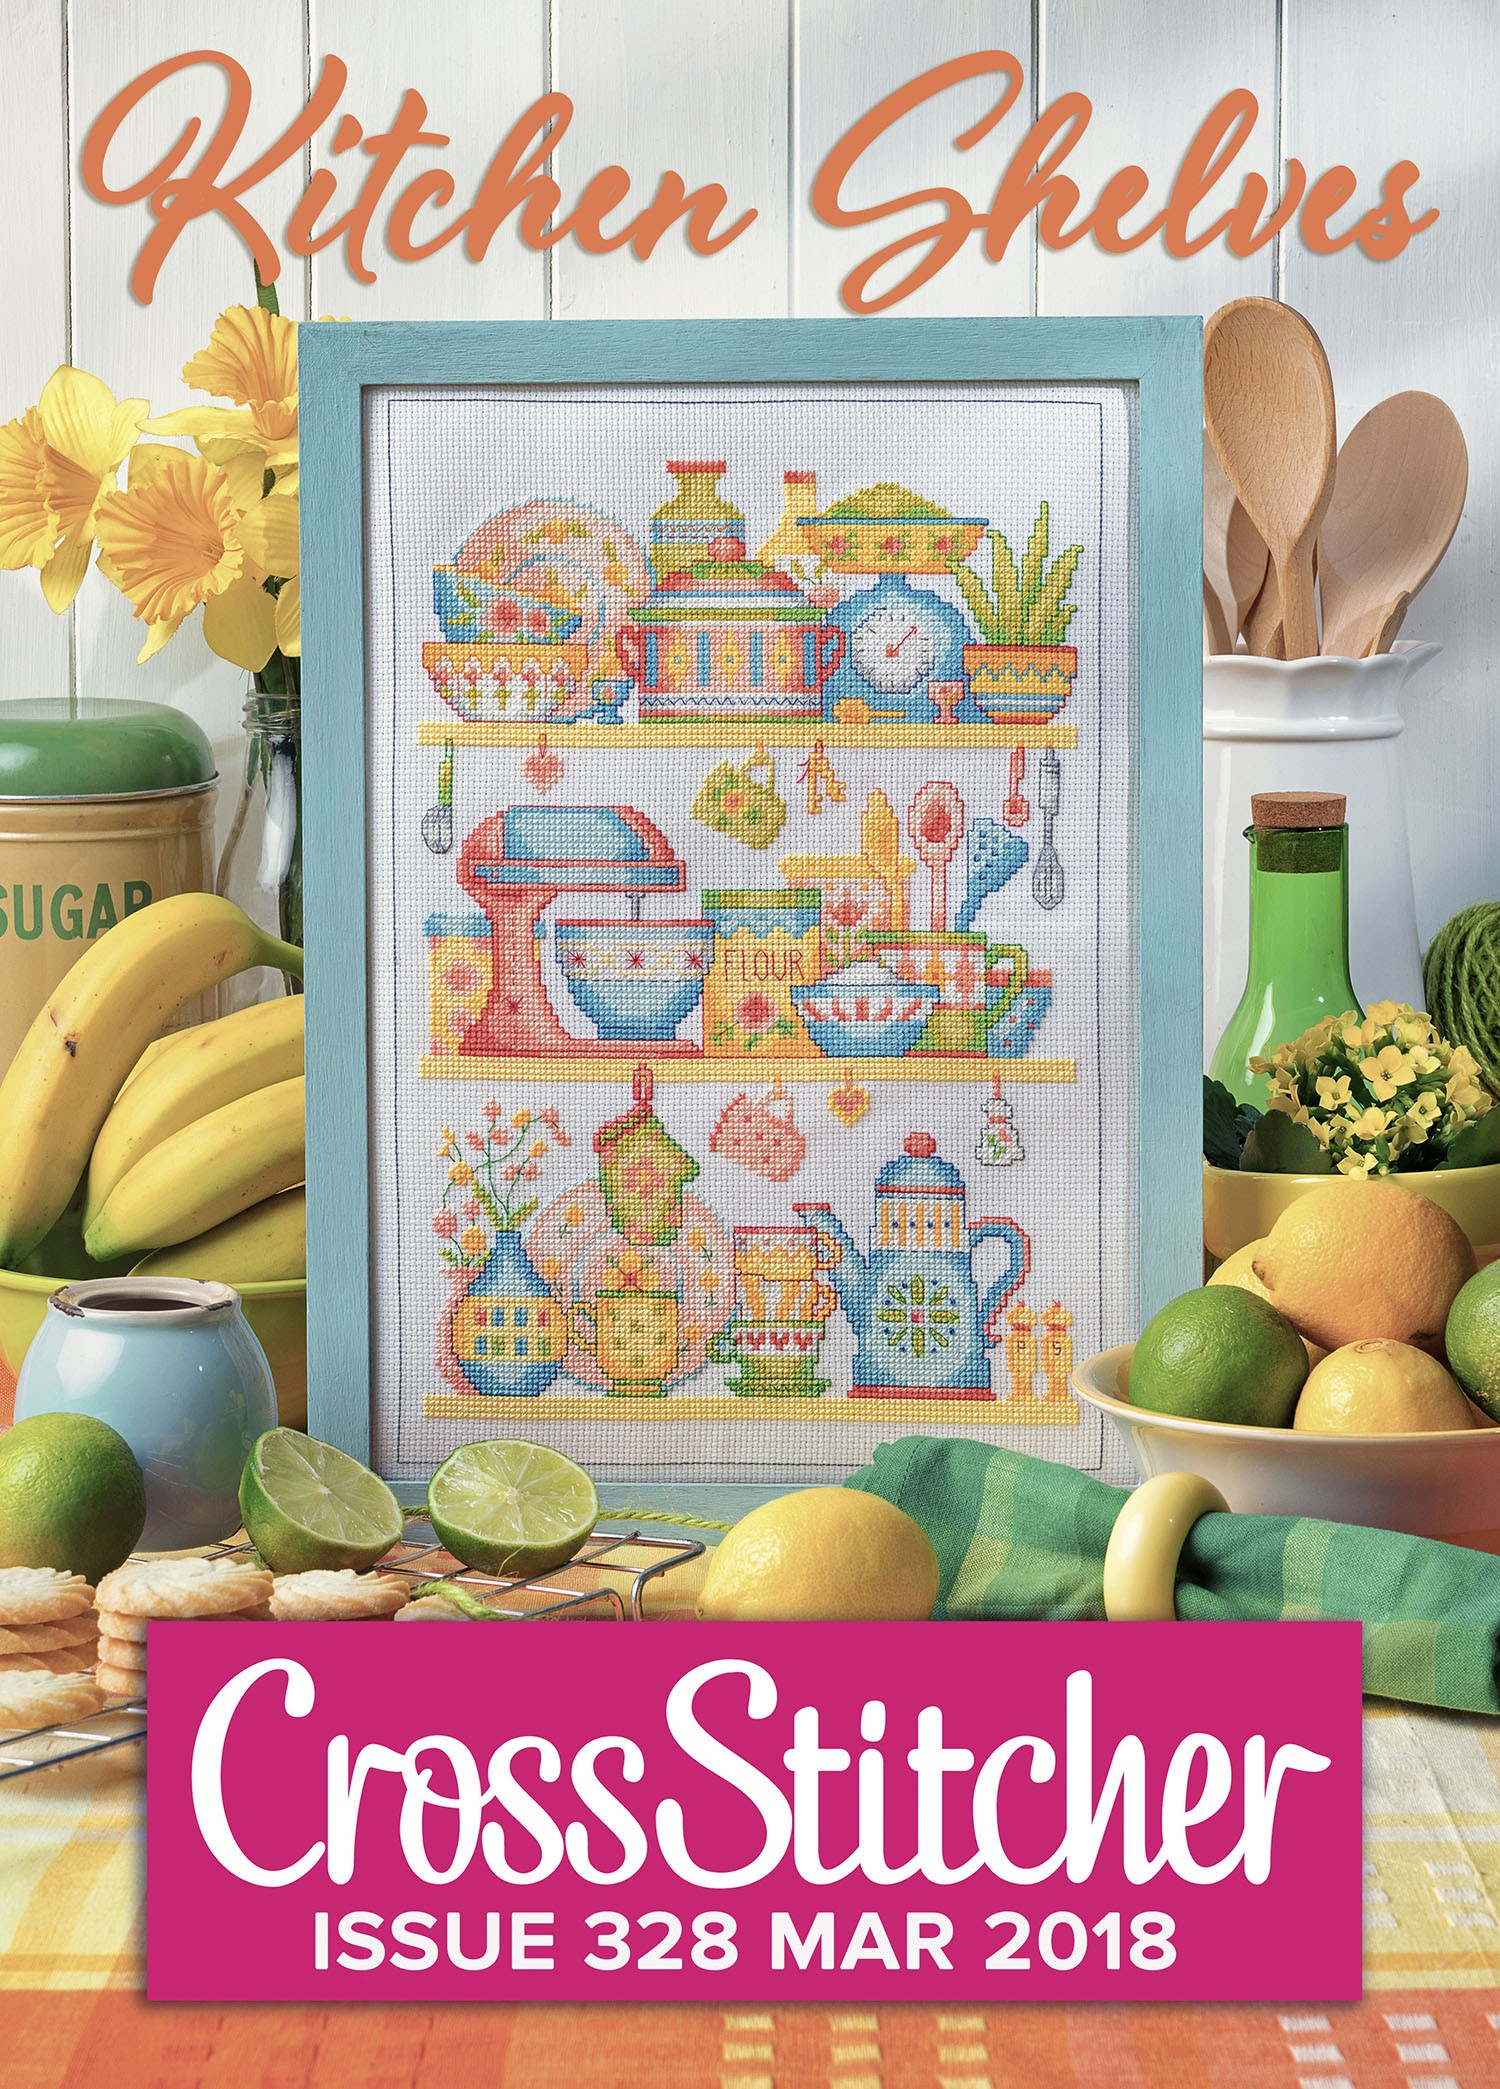 Cross Stitcher Project Pack - Kitchen Shelves Issue 328